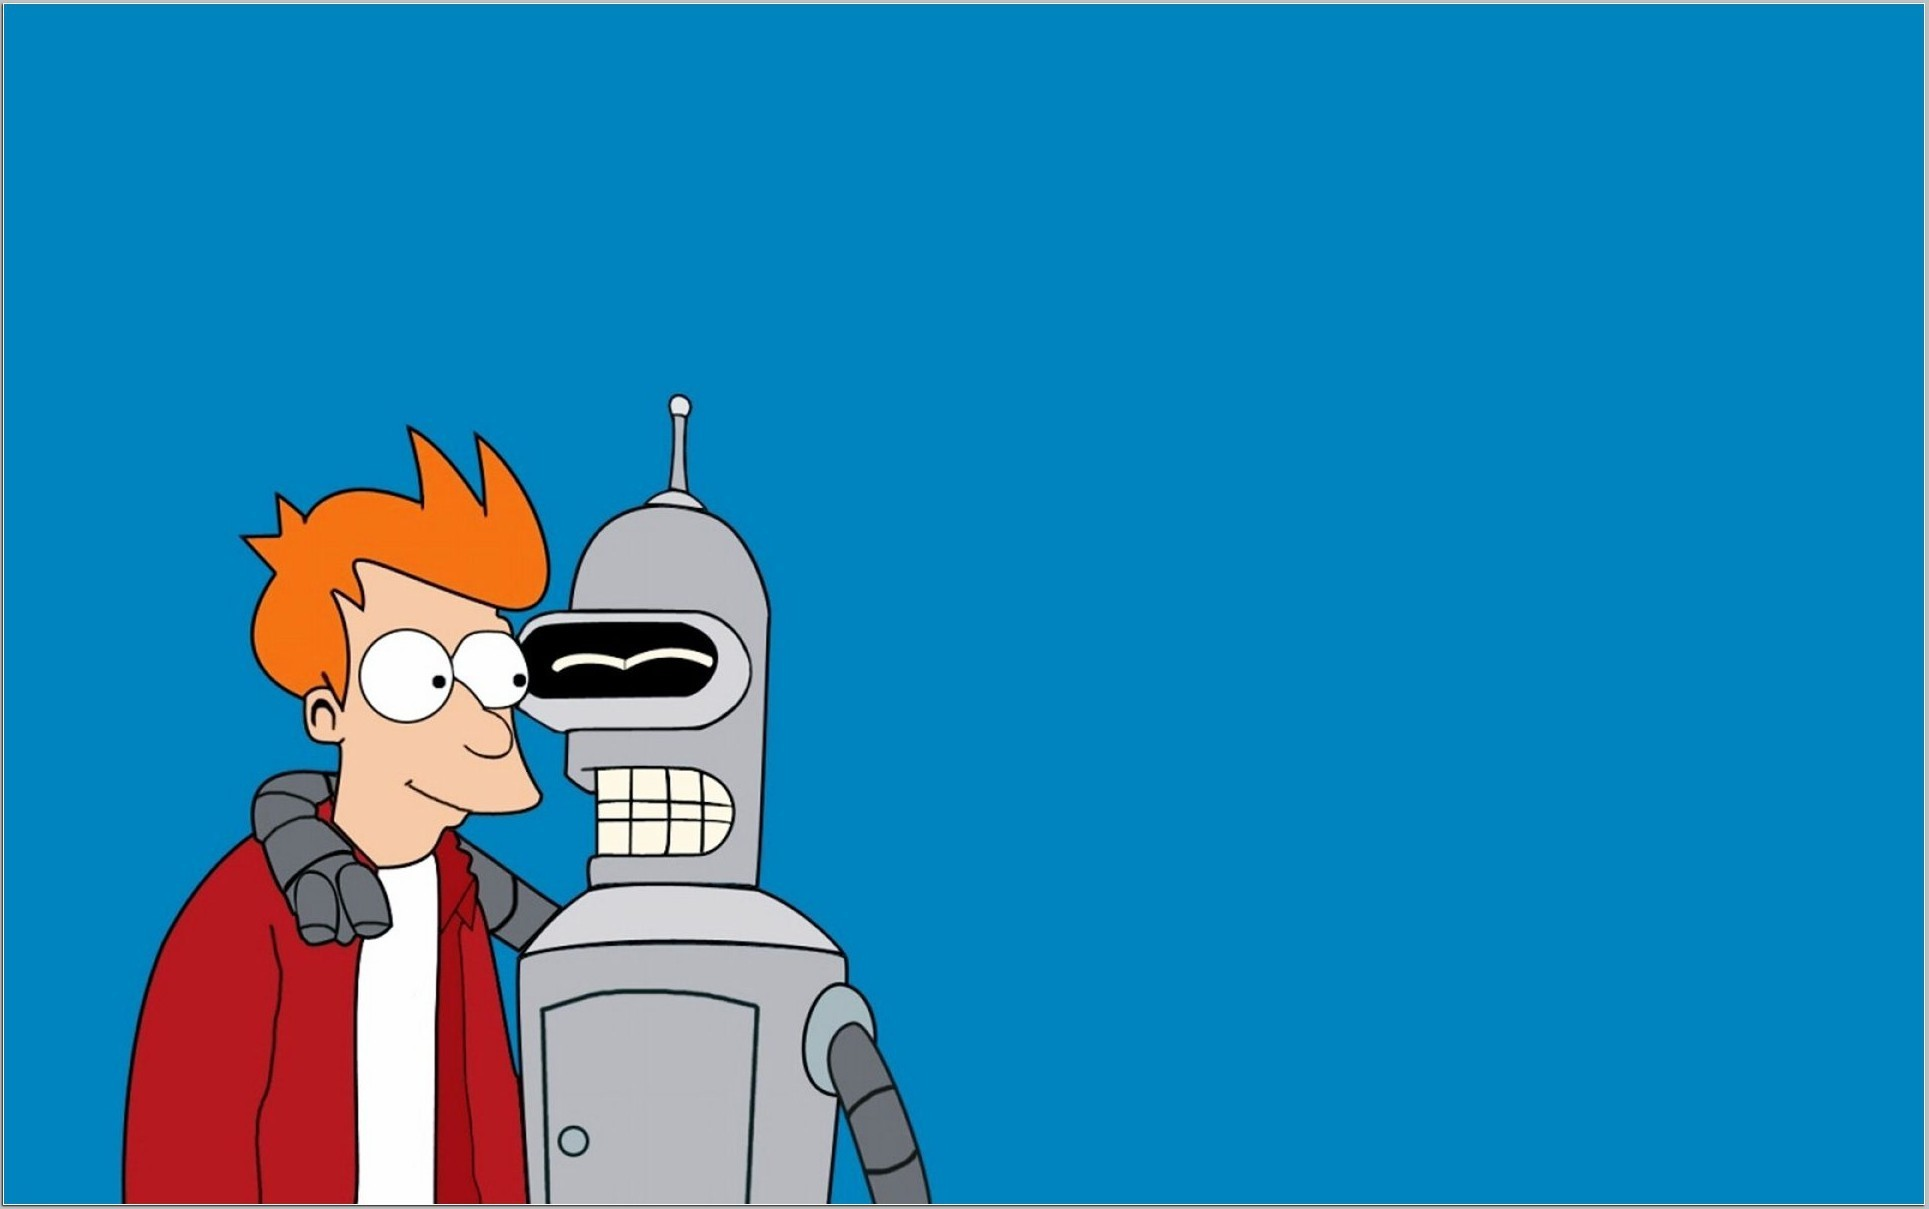 1929x1209 1920x1080 Futurama HD Wallpapers and Backgrounds 1280×720 Futurama  Wallpaper (45 Wallpapers) | Adorable Wallpapers